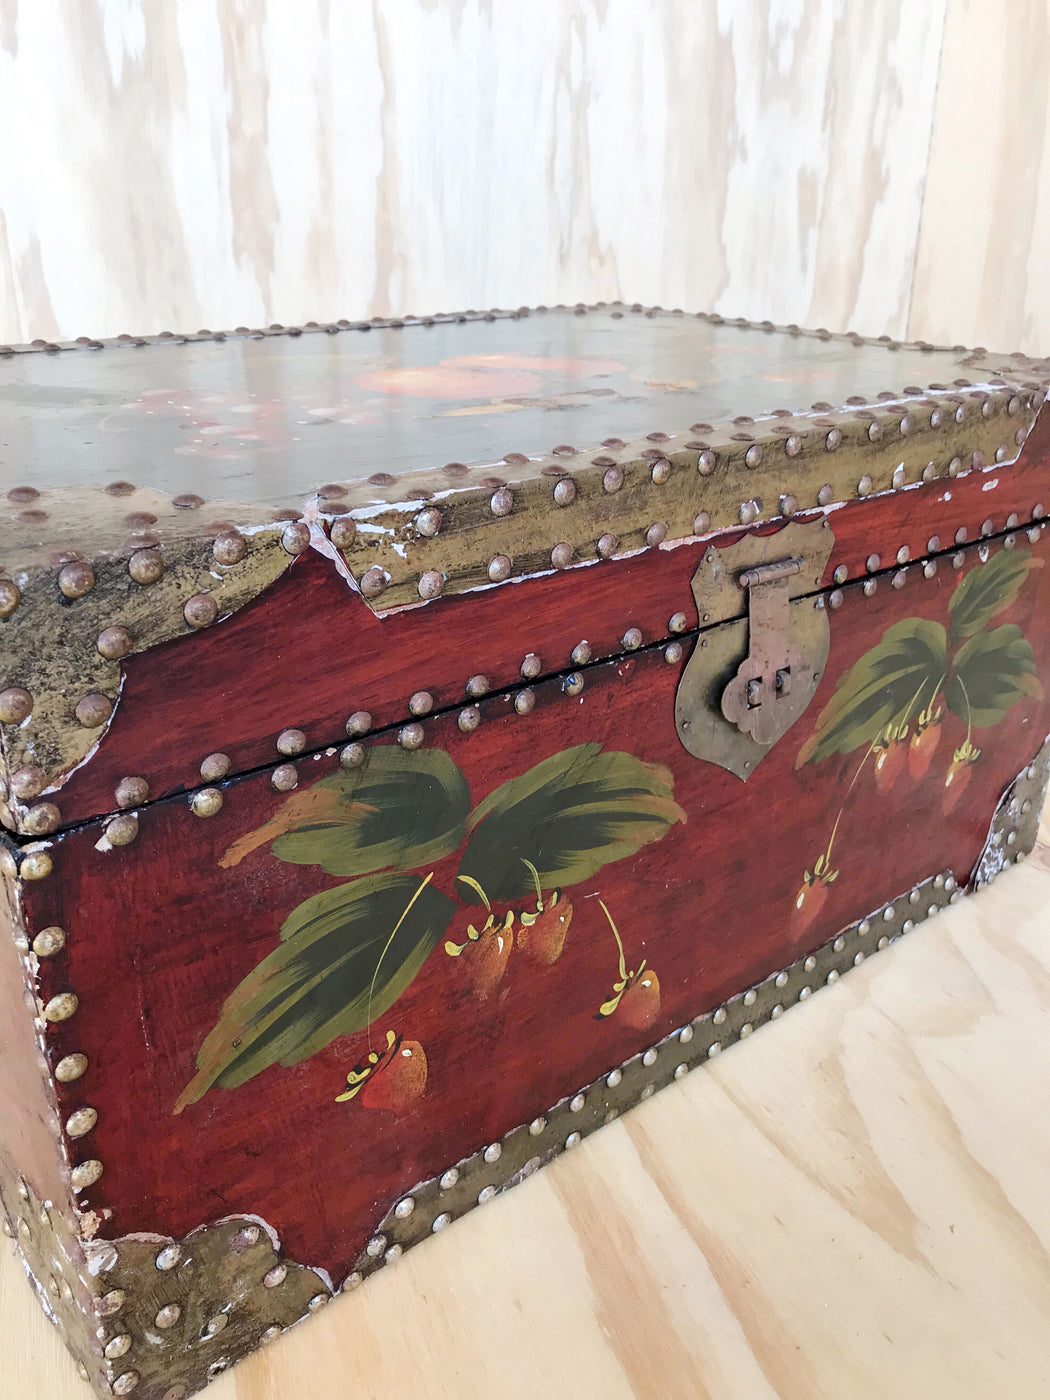 Hand-Painted Wooden Treasure Chest